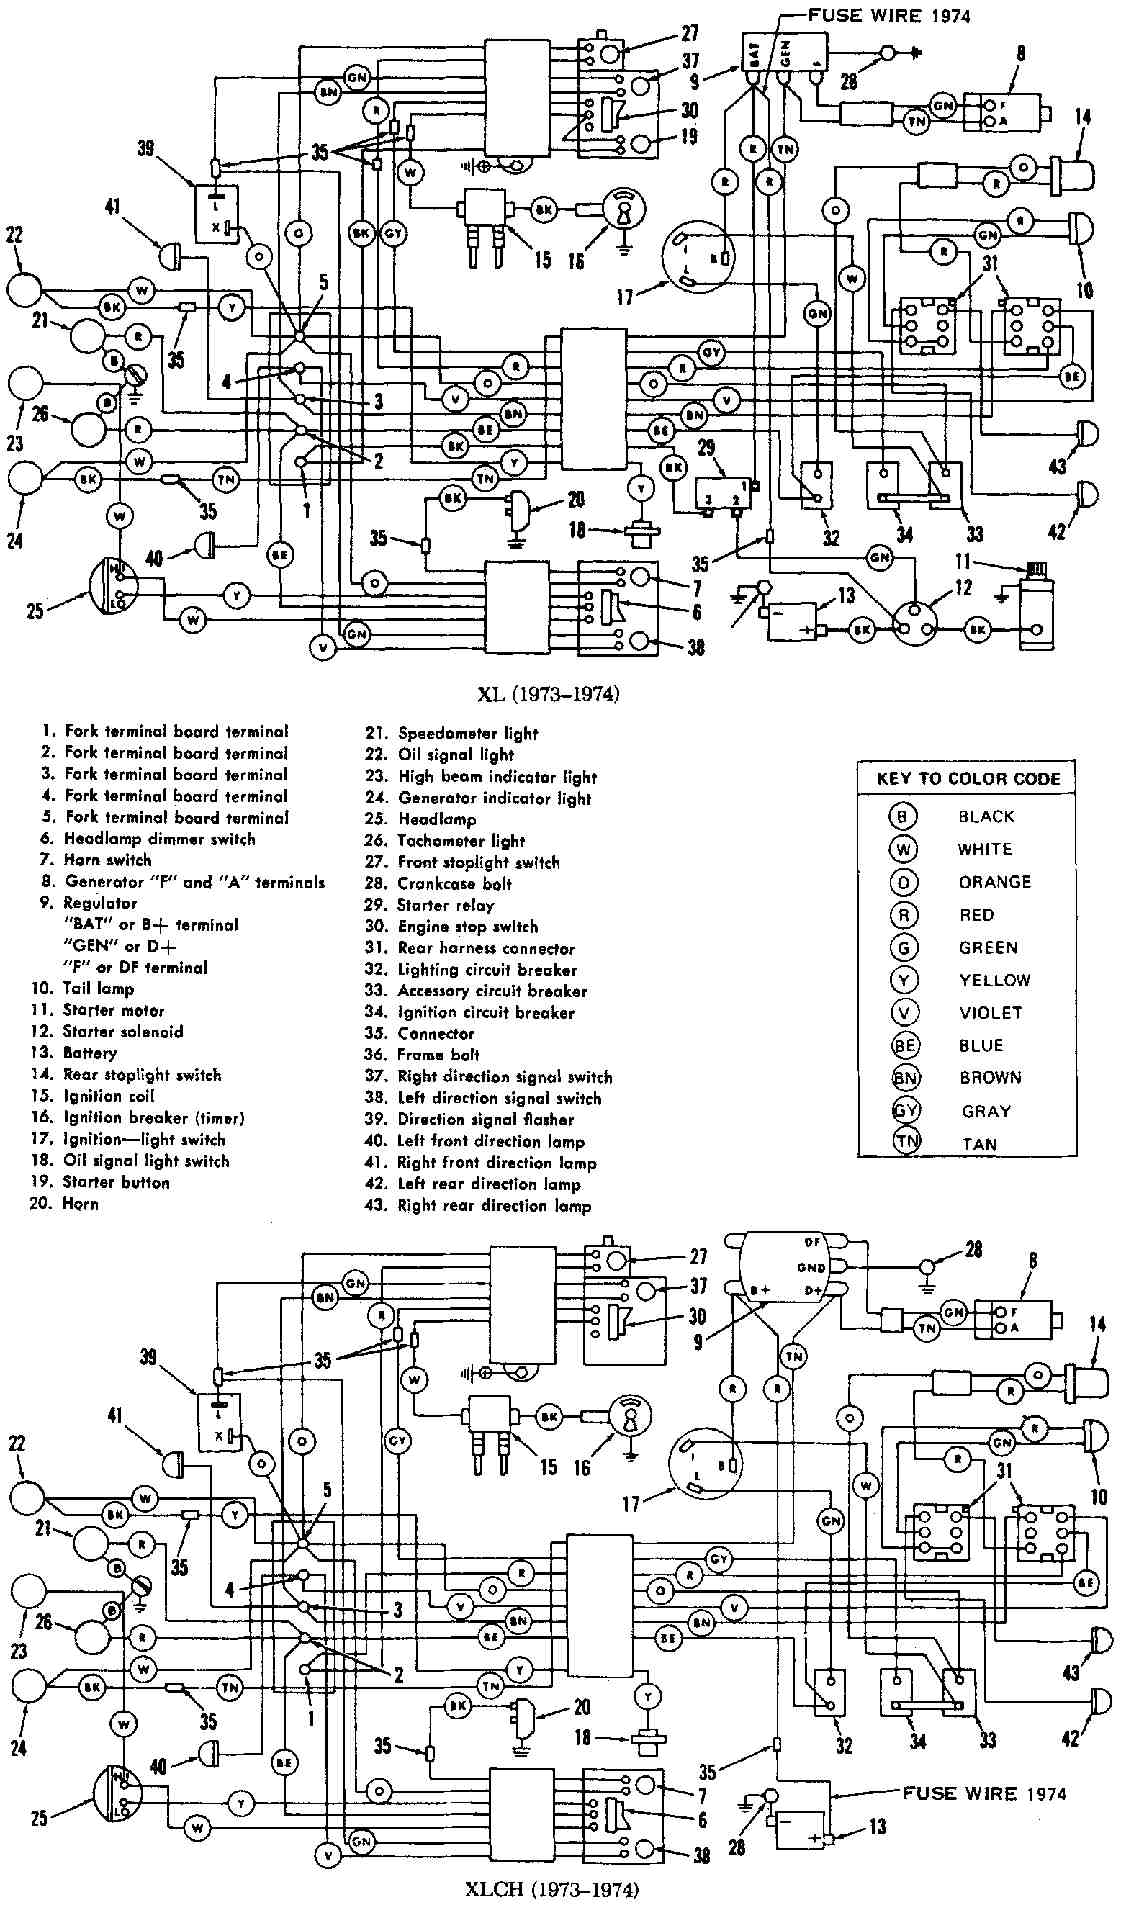 1987 Harley Wiring Diagram Library 1983 Chevrolet Radio Davidson Motorcycle Manuals Pdf Diagrams Fault Codes Rh Manual Fxr